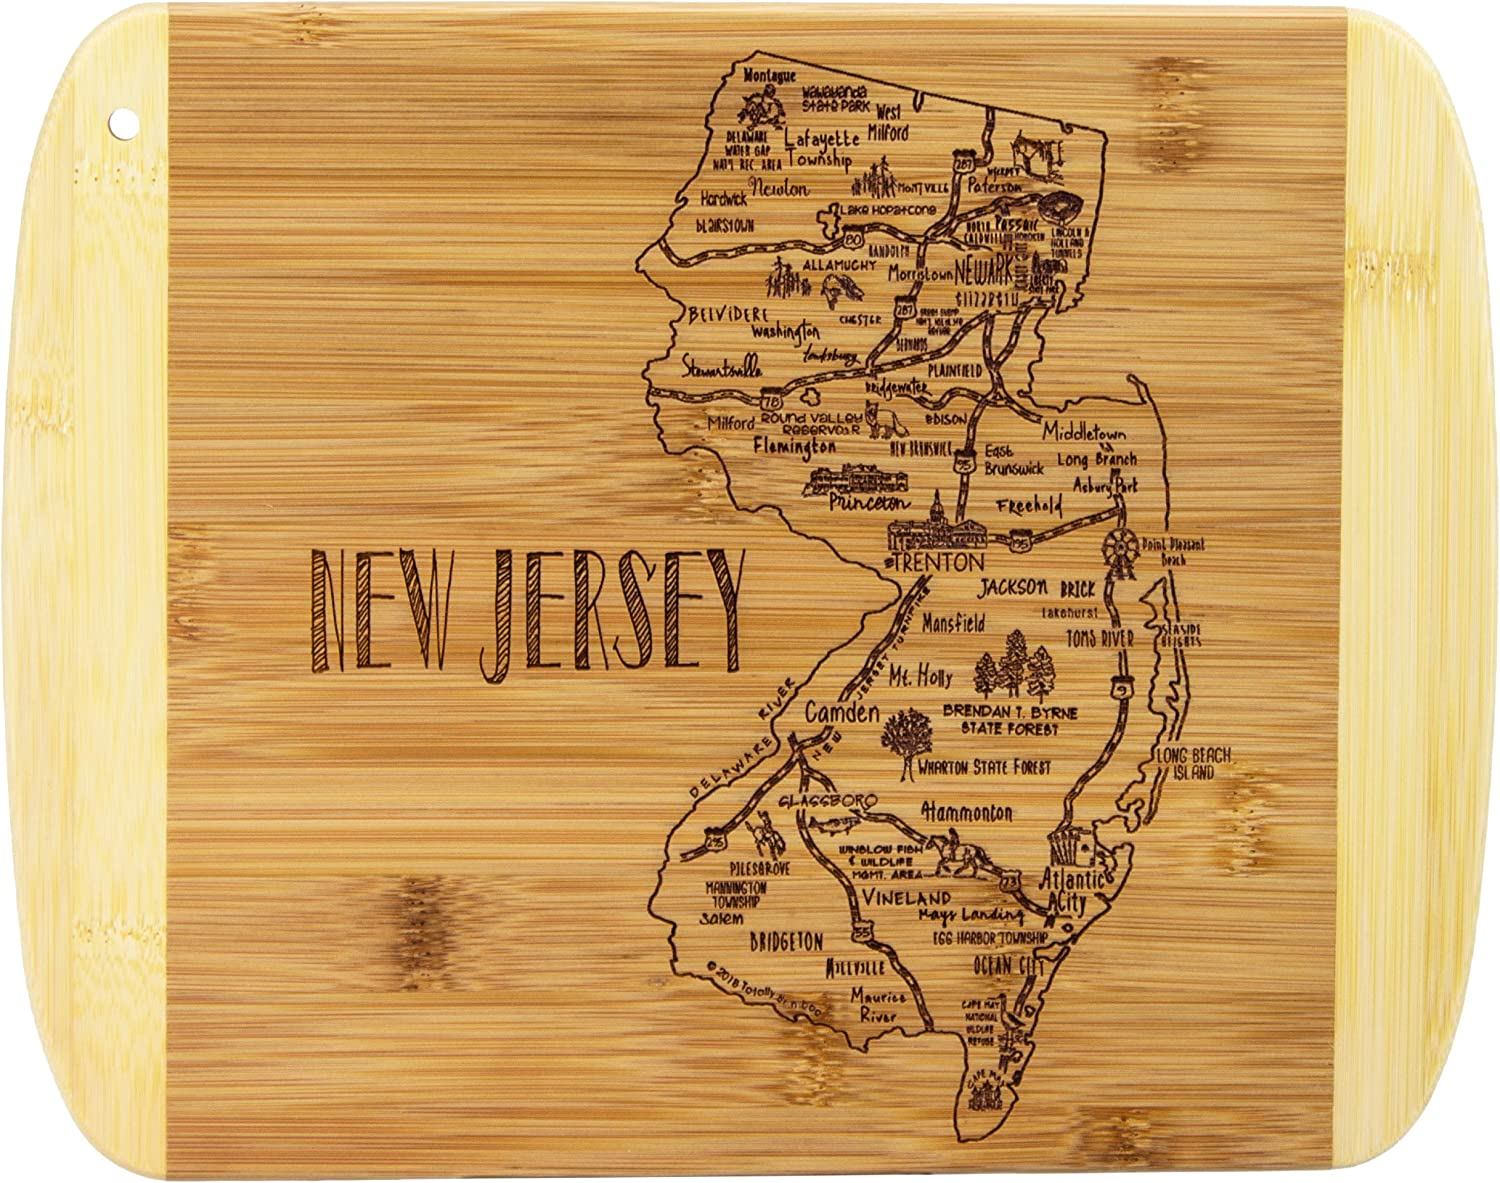 Totally Bamboo A Slice of Life New Jersey Bamboo Serving and Cutting Board